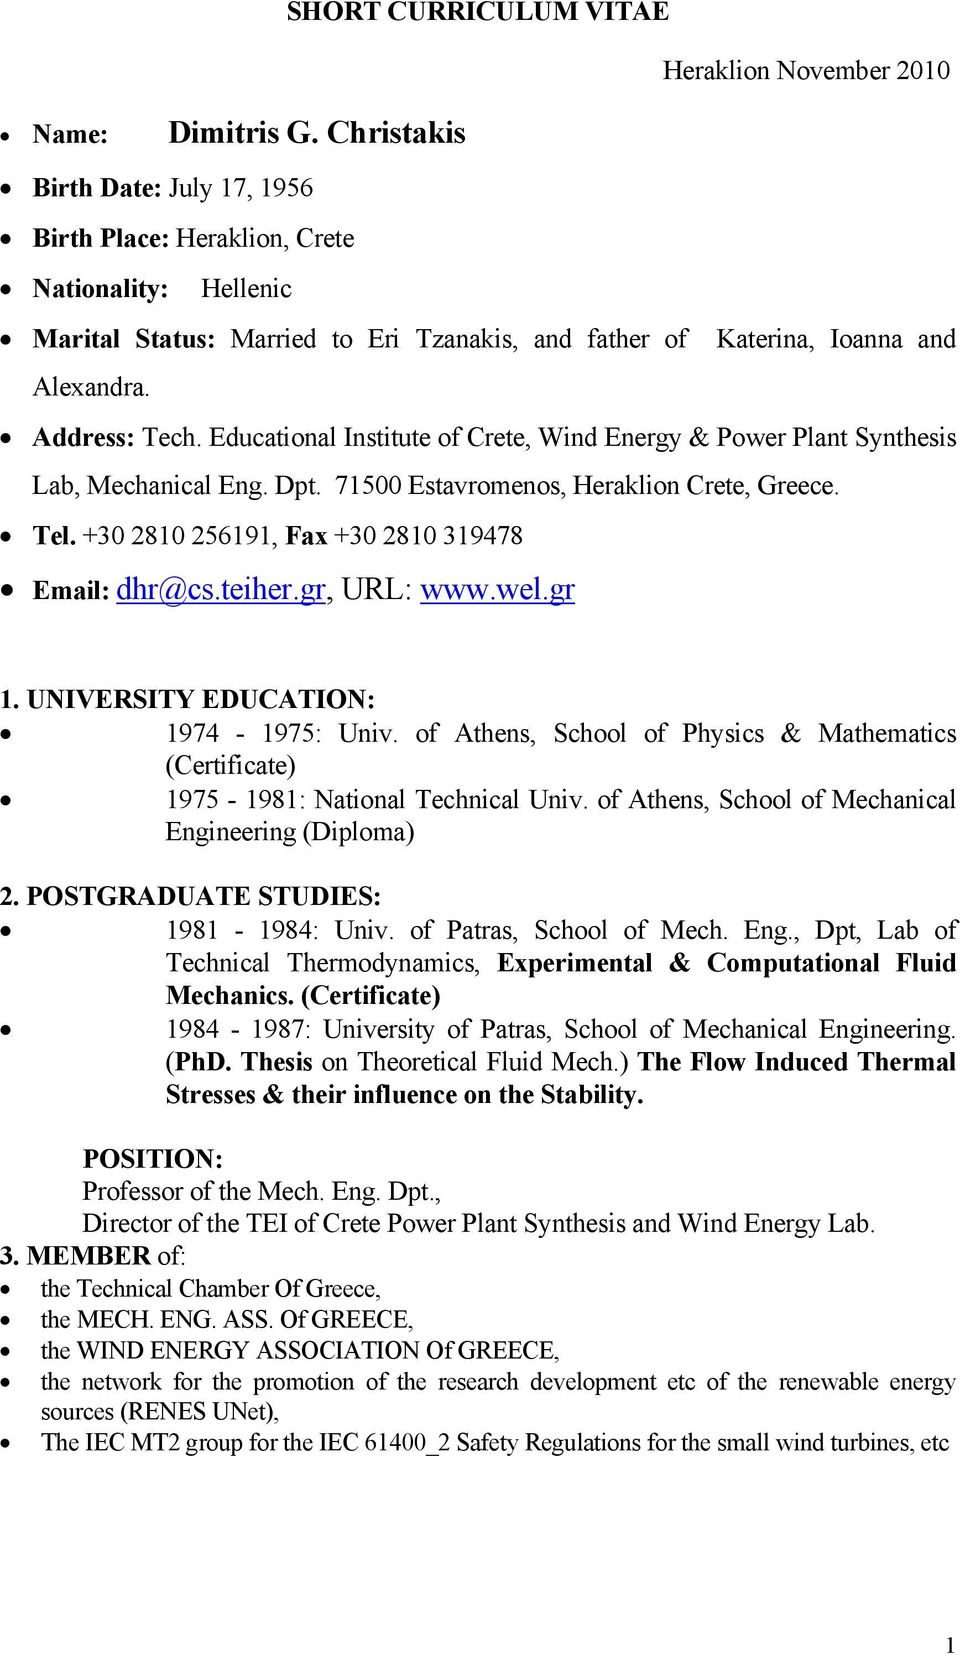 Educational Institute of Crete, Wind Energy & Power Plant Synthesis Lab, Mechanical Eng. Dpt. 71500 Estavromenos, Heraklion Crete, Greece. Tel. +30 2810 256191, Fax +30 2810 319478 Email: dhr@cs.